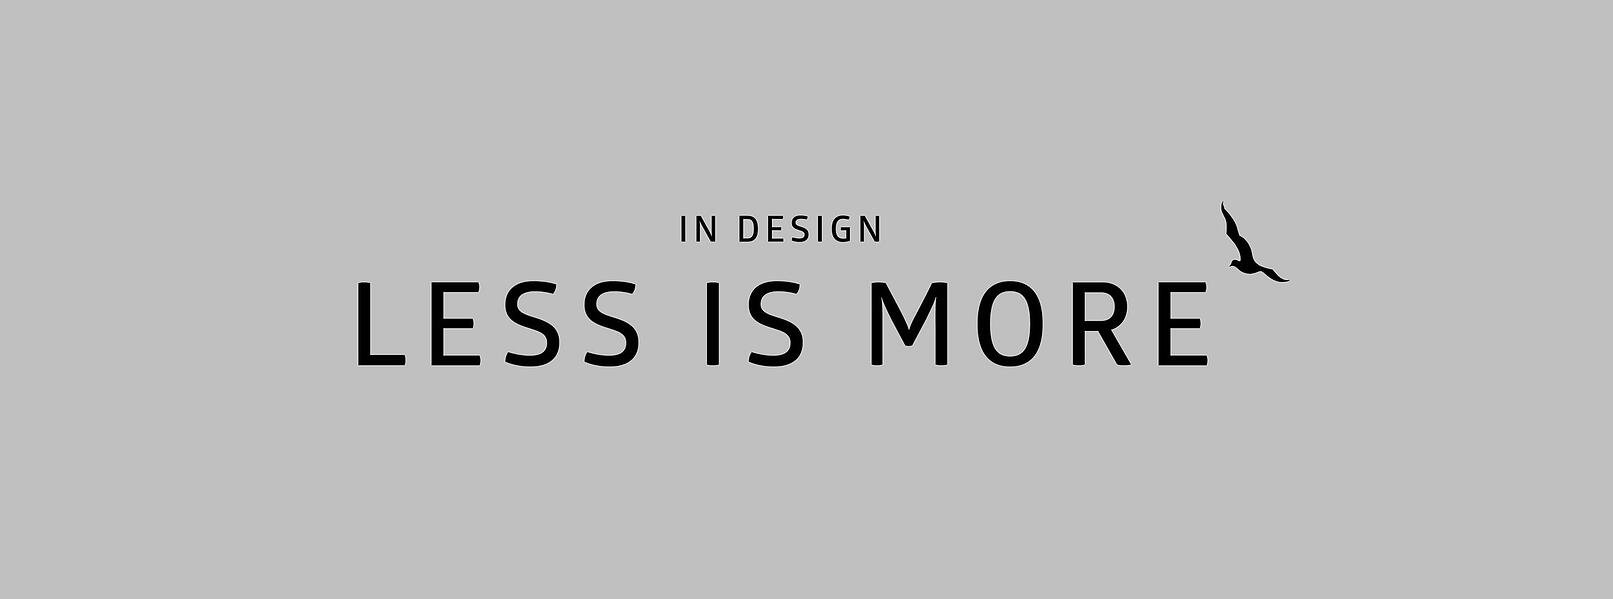 less is more in design